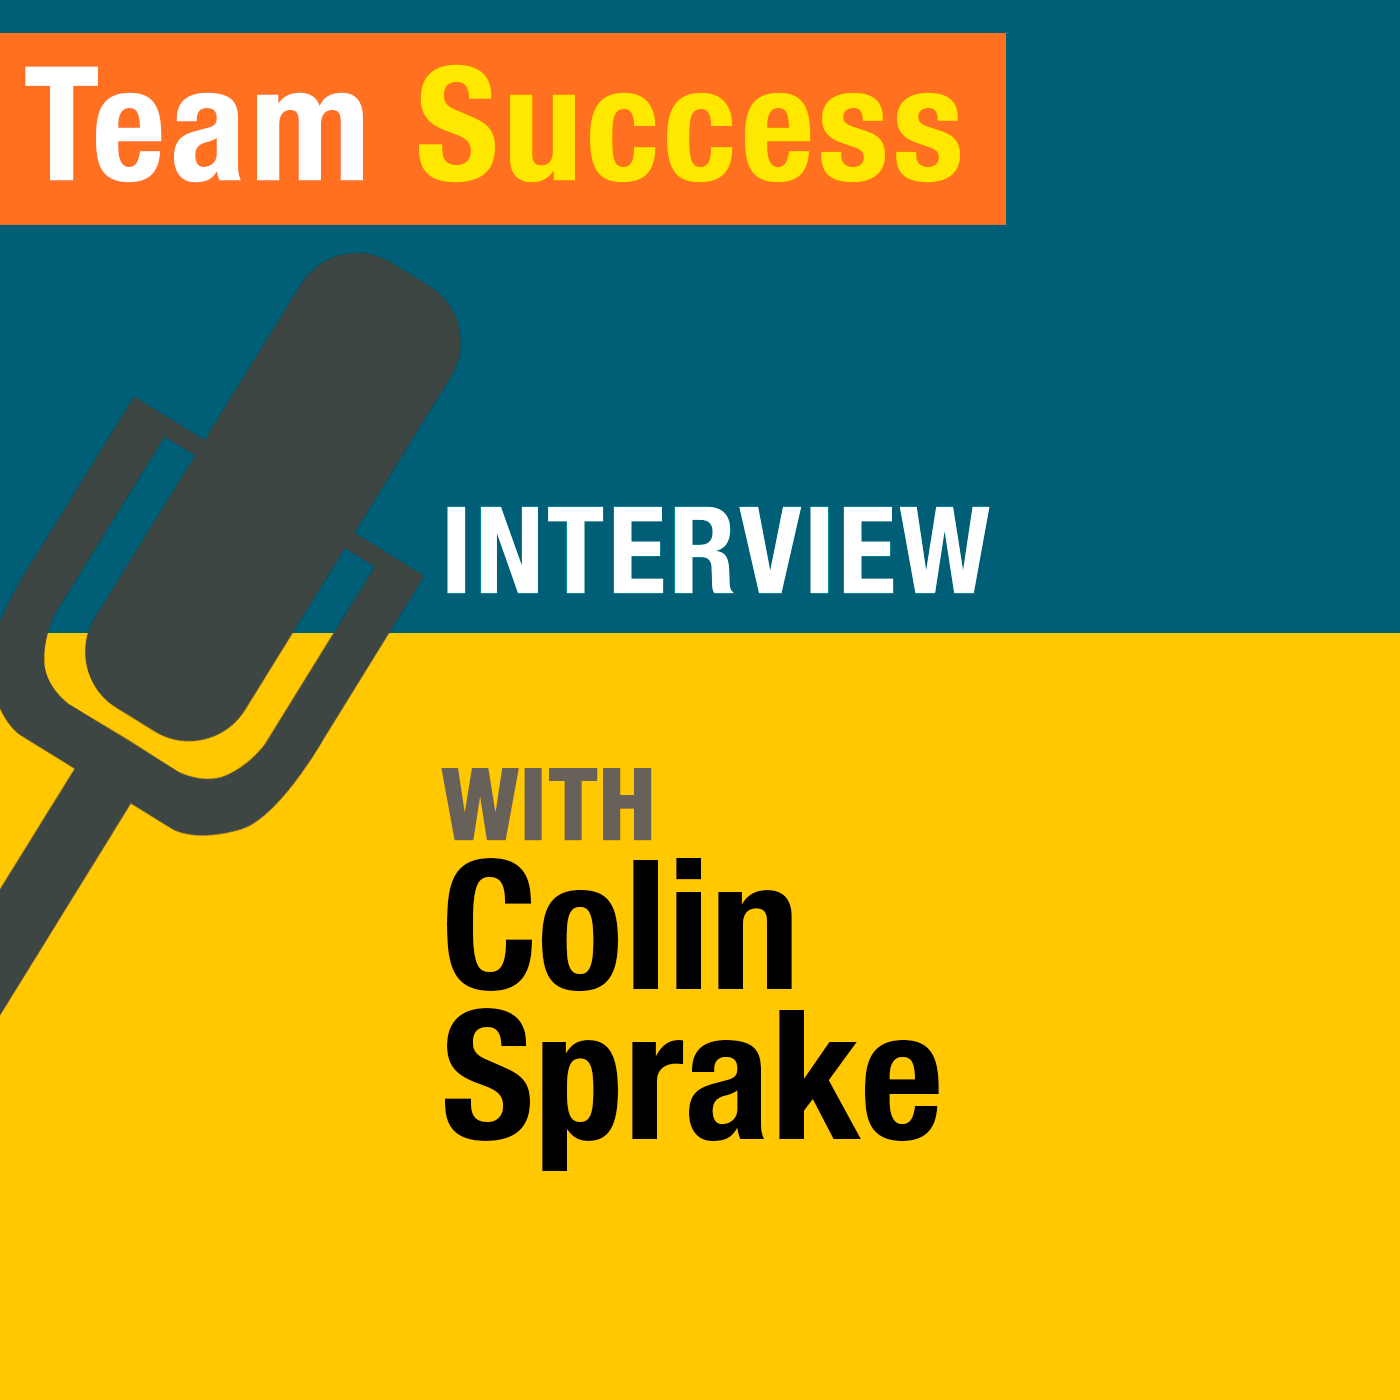 How To Improve Your Hiring With Colin Sprake Of Make Your Mark Training & Consulting